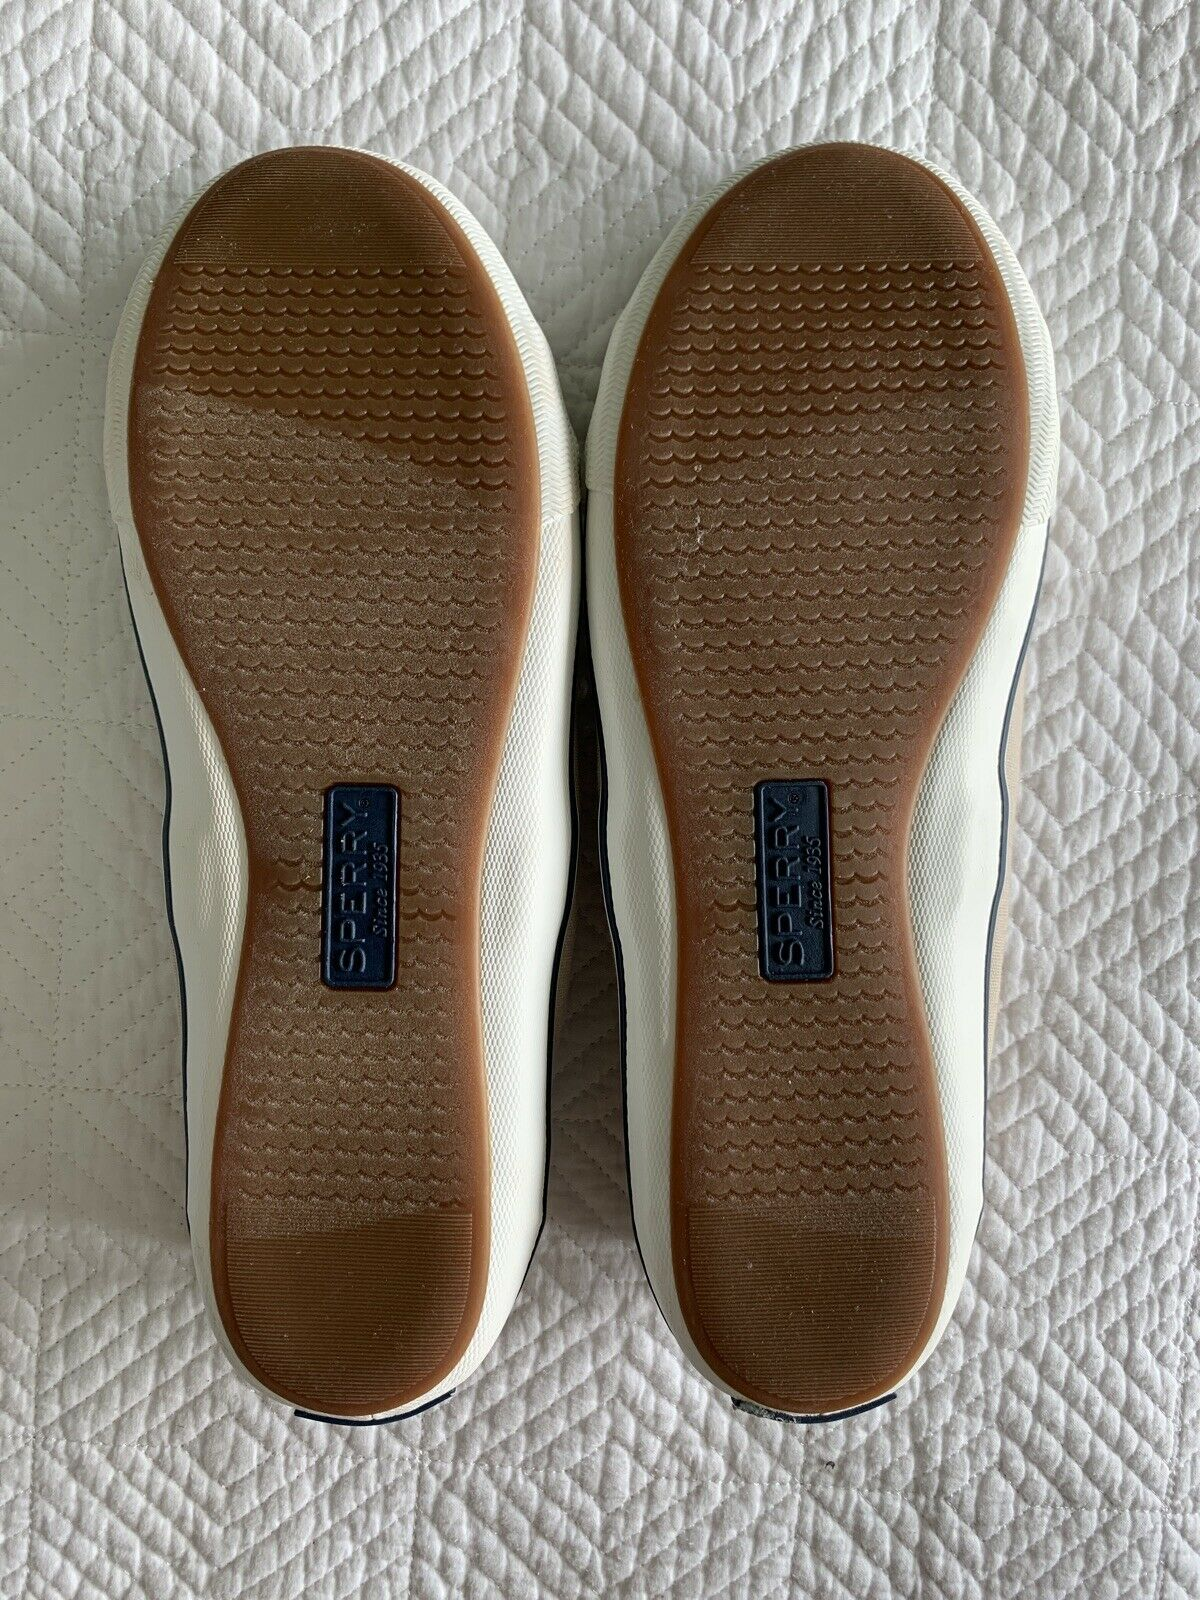 Sperry Top Sider Women's Size 10 Lounge LTT Sand Shoes - Missing One Sole